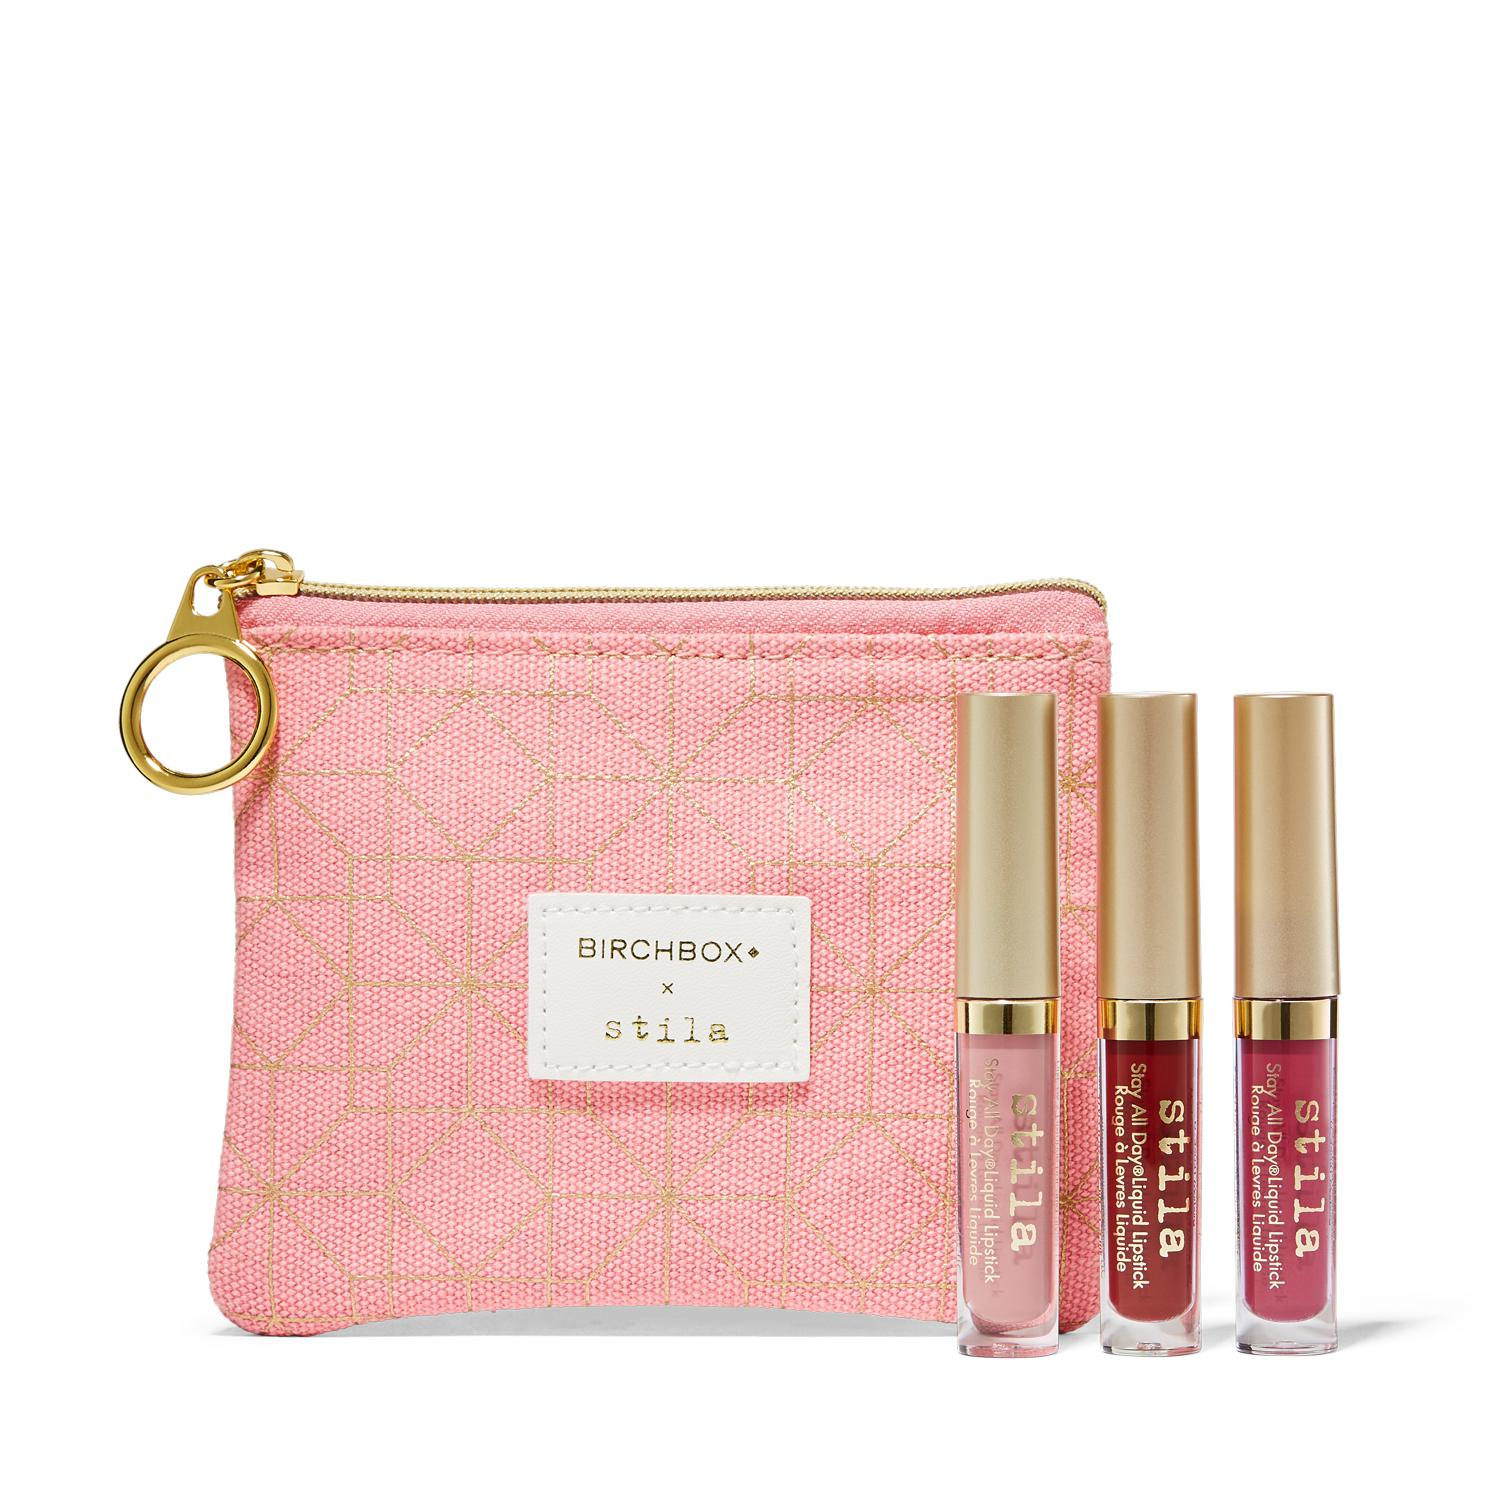 Stila Cosmetics The Perfect Kiss Stay All Day Liquid Lipstick Trio from Birchbox // Price: $18 // (Image: Birchbox)